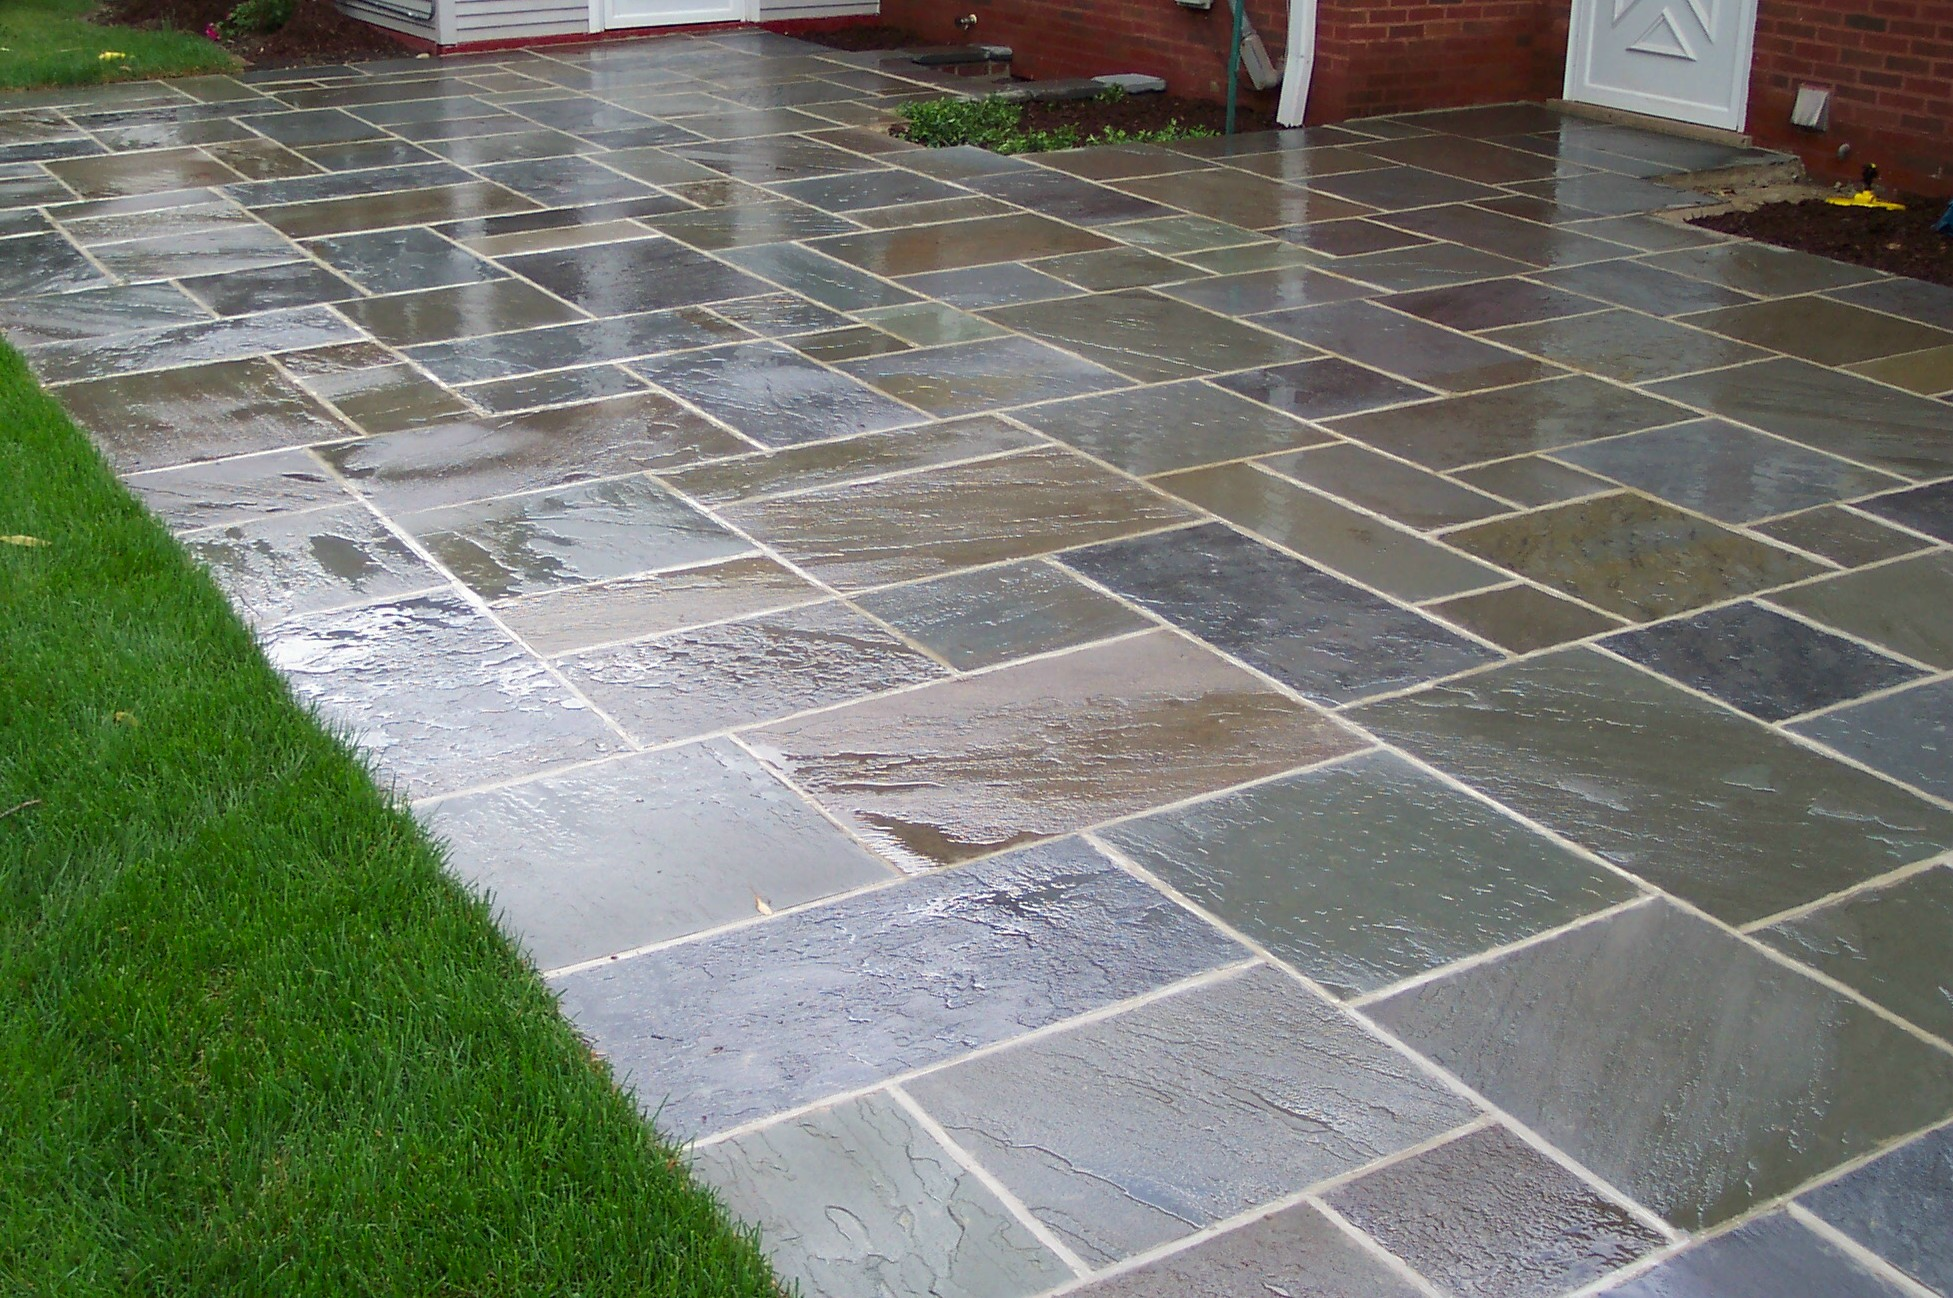 of stone concrete cdbossington vs pavers image texture ideas design patio interior stamped